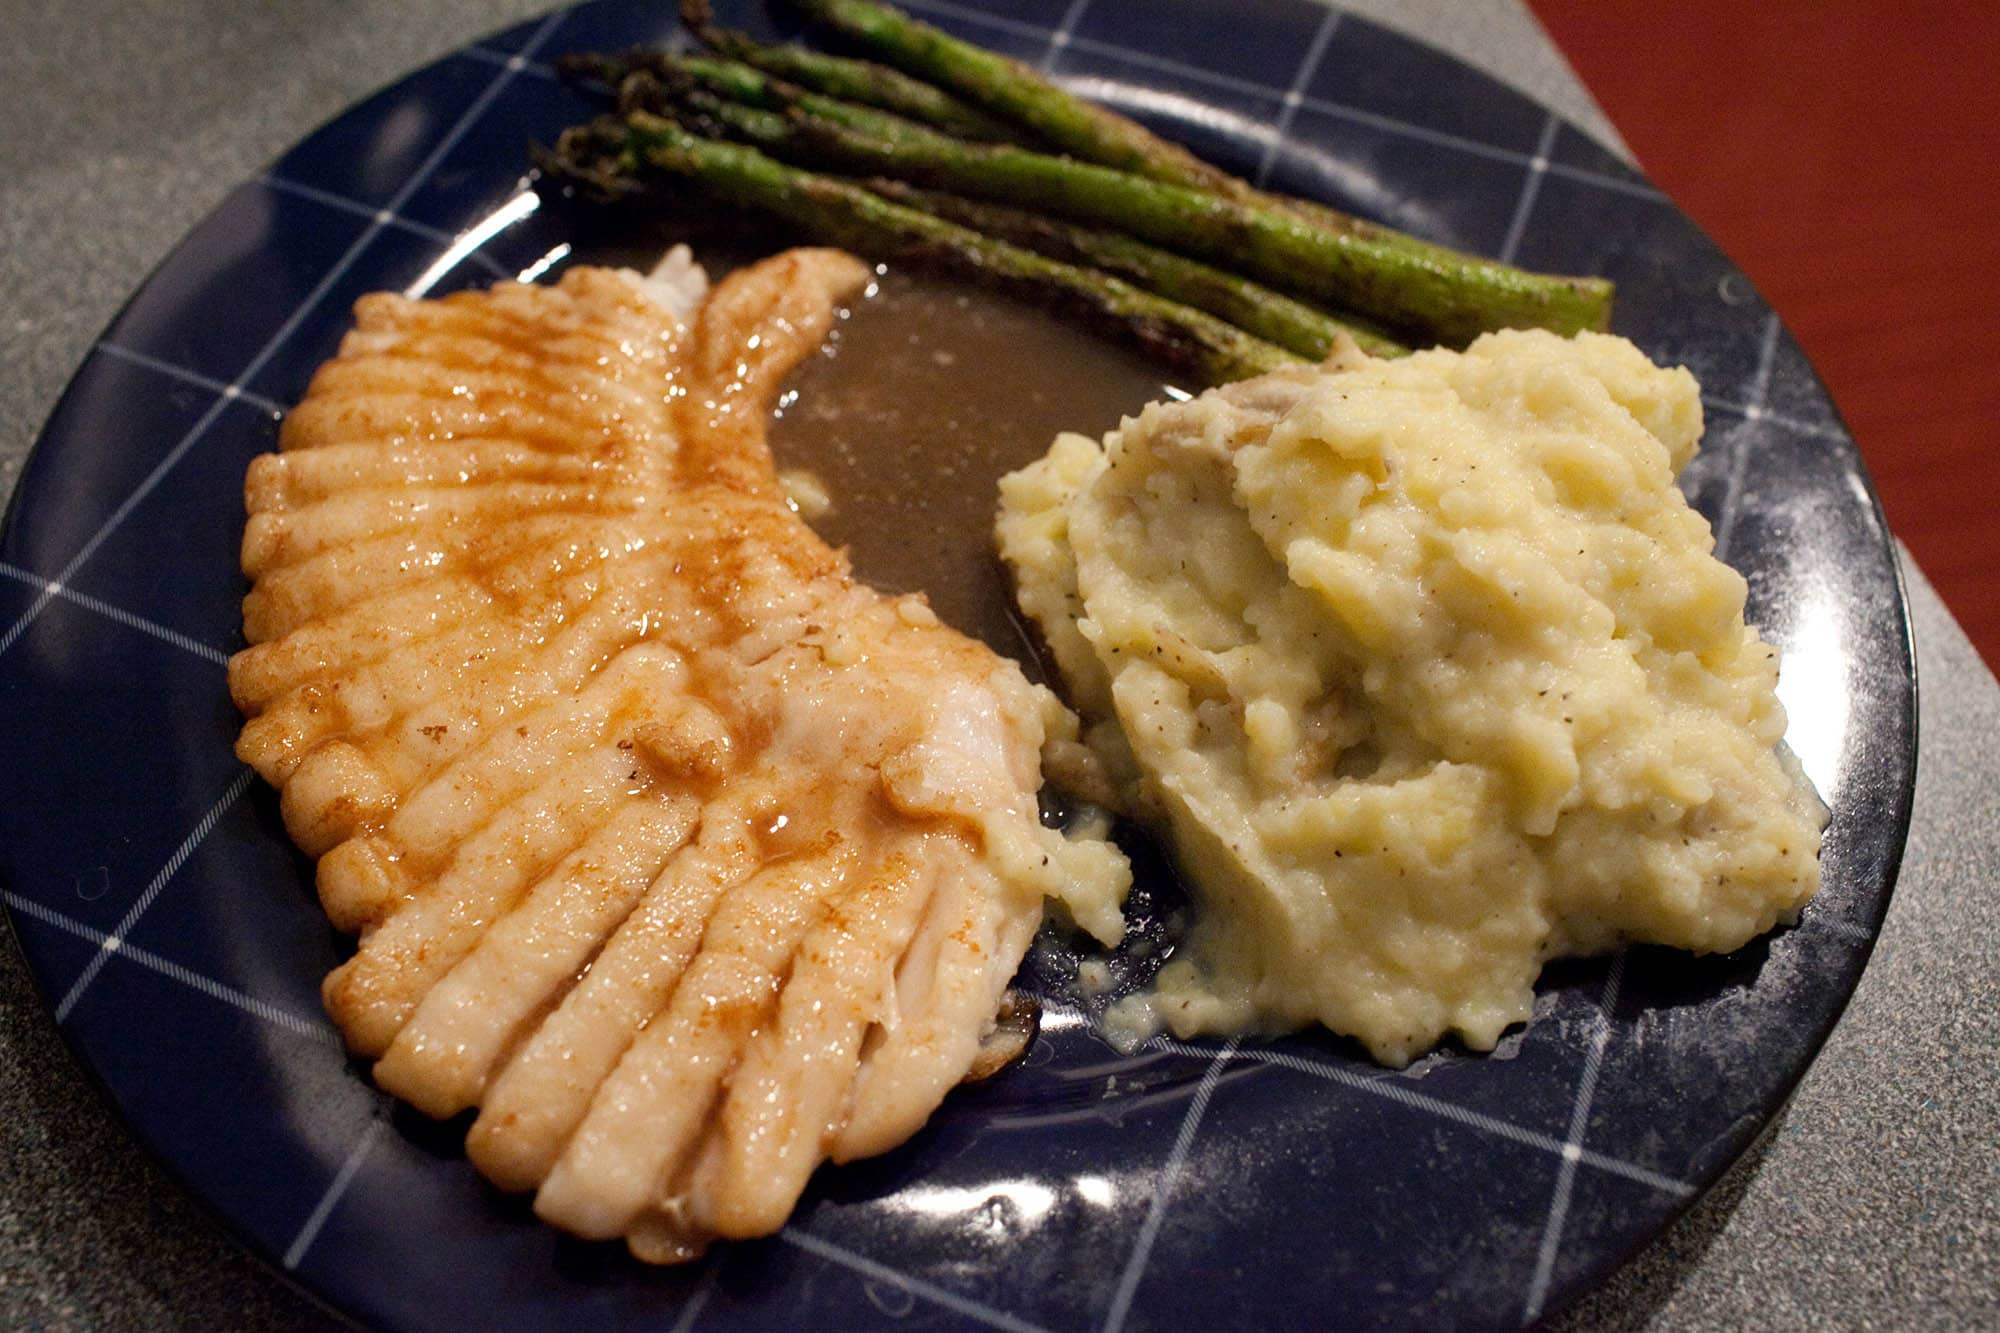 Skate wing with mashed potatoes and asparagus.